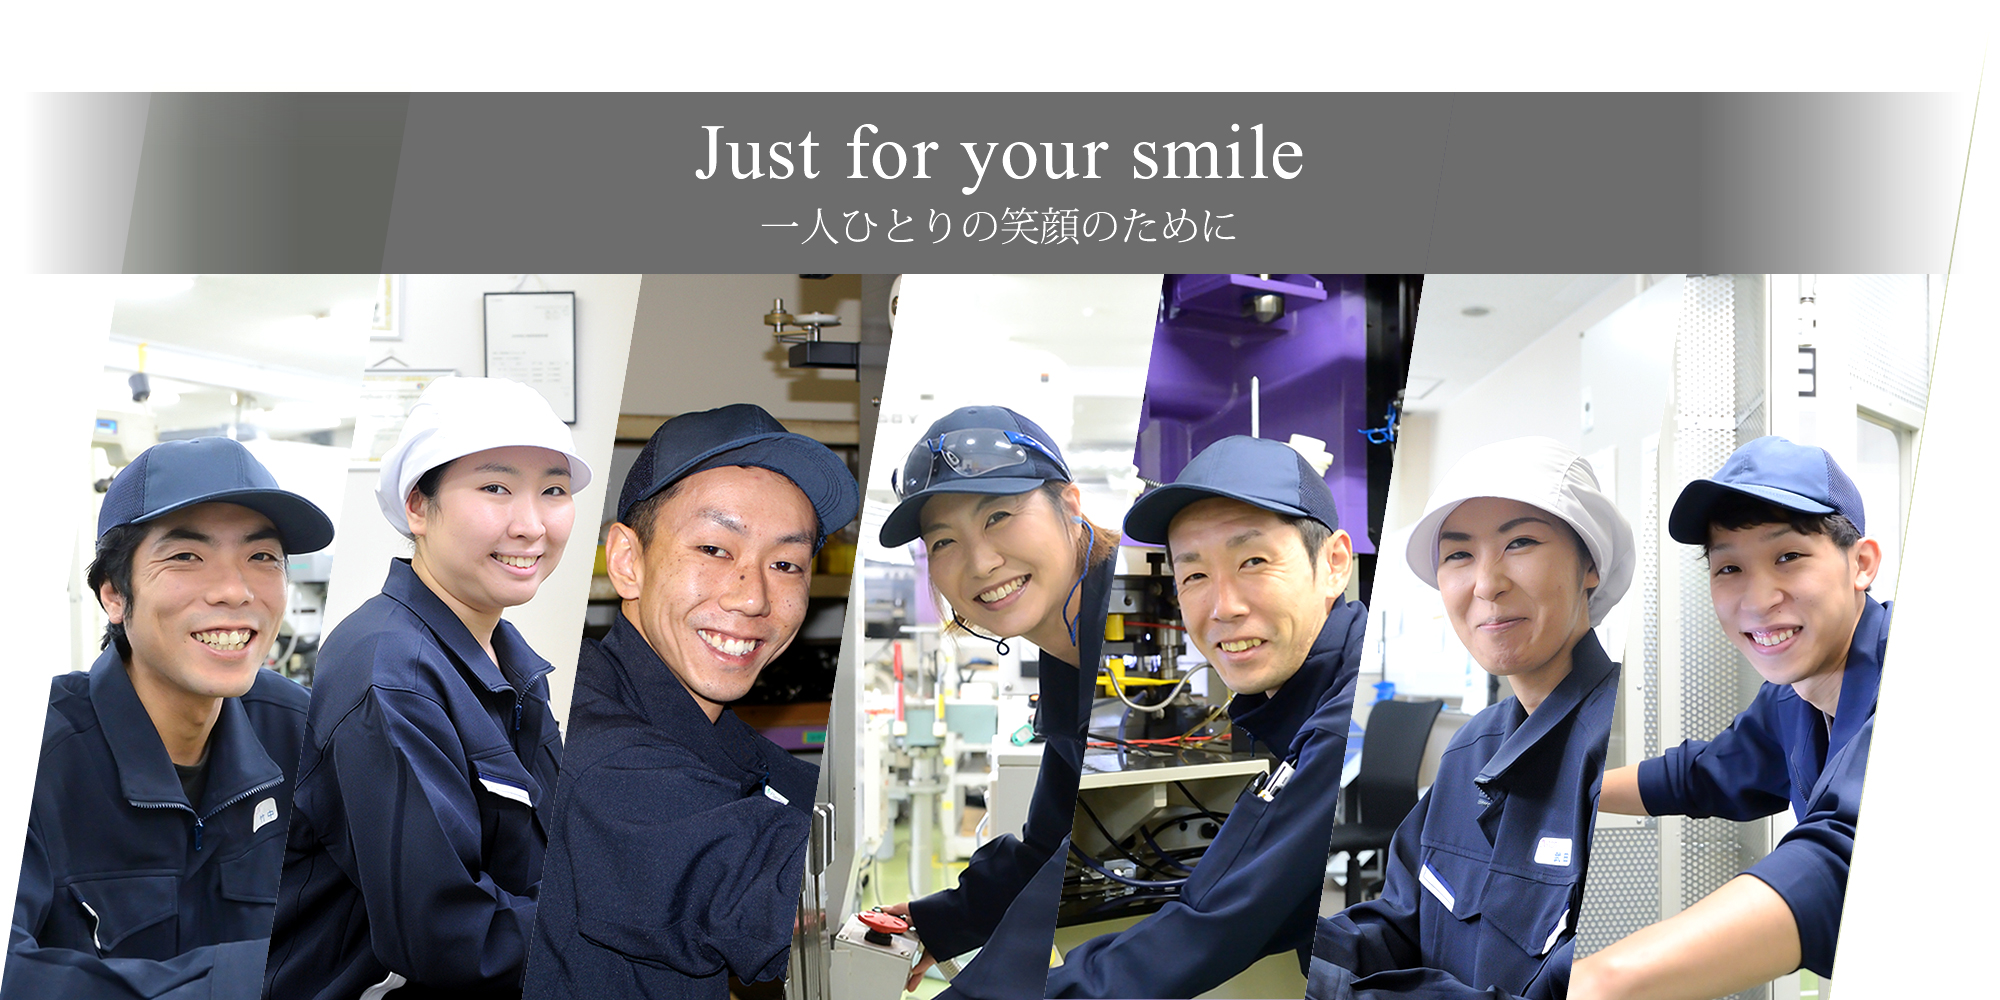 Just for your smile 一人ひとりの笑顔のために